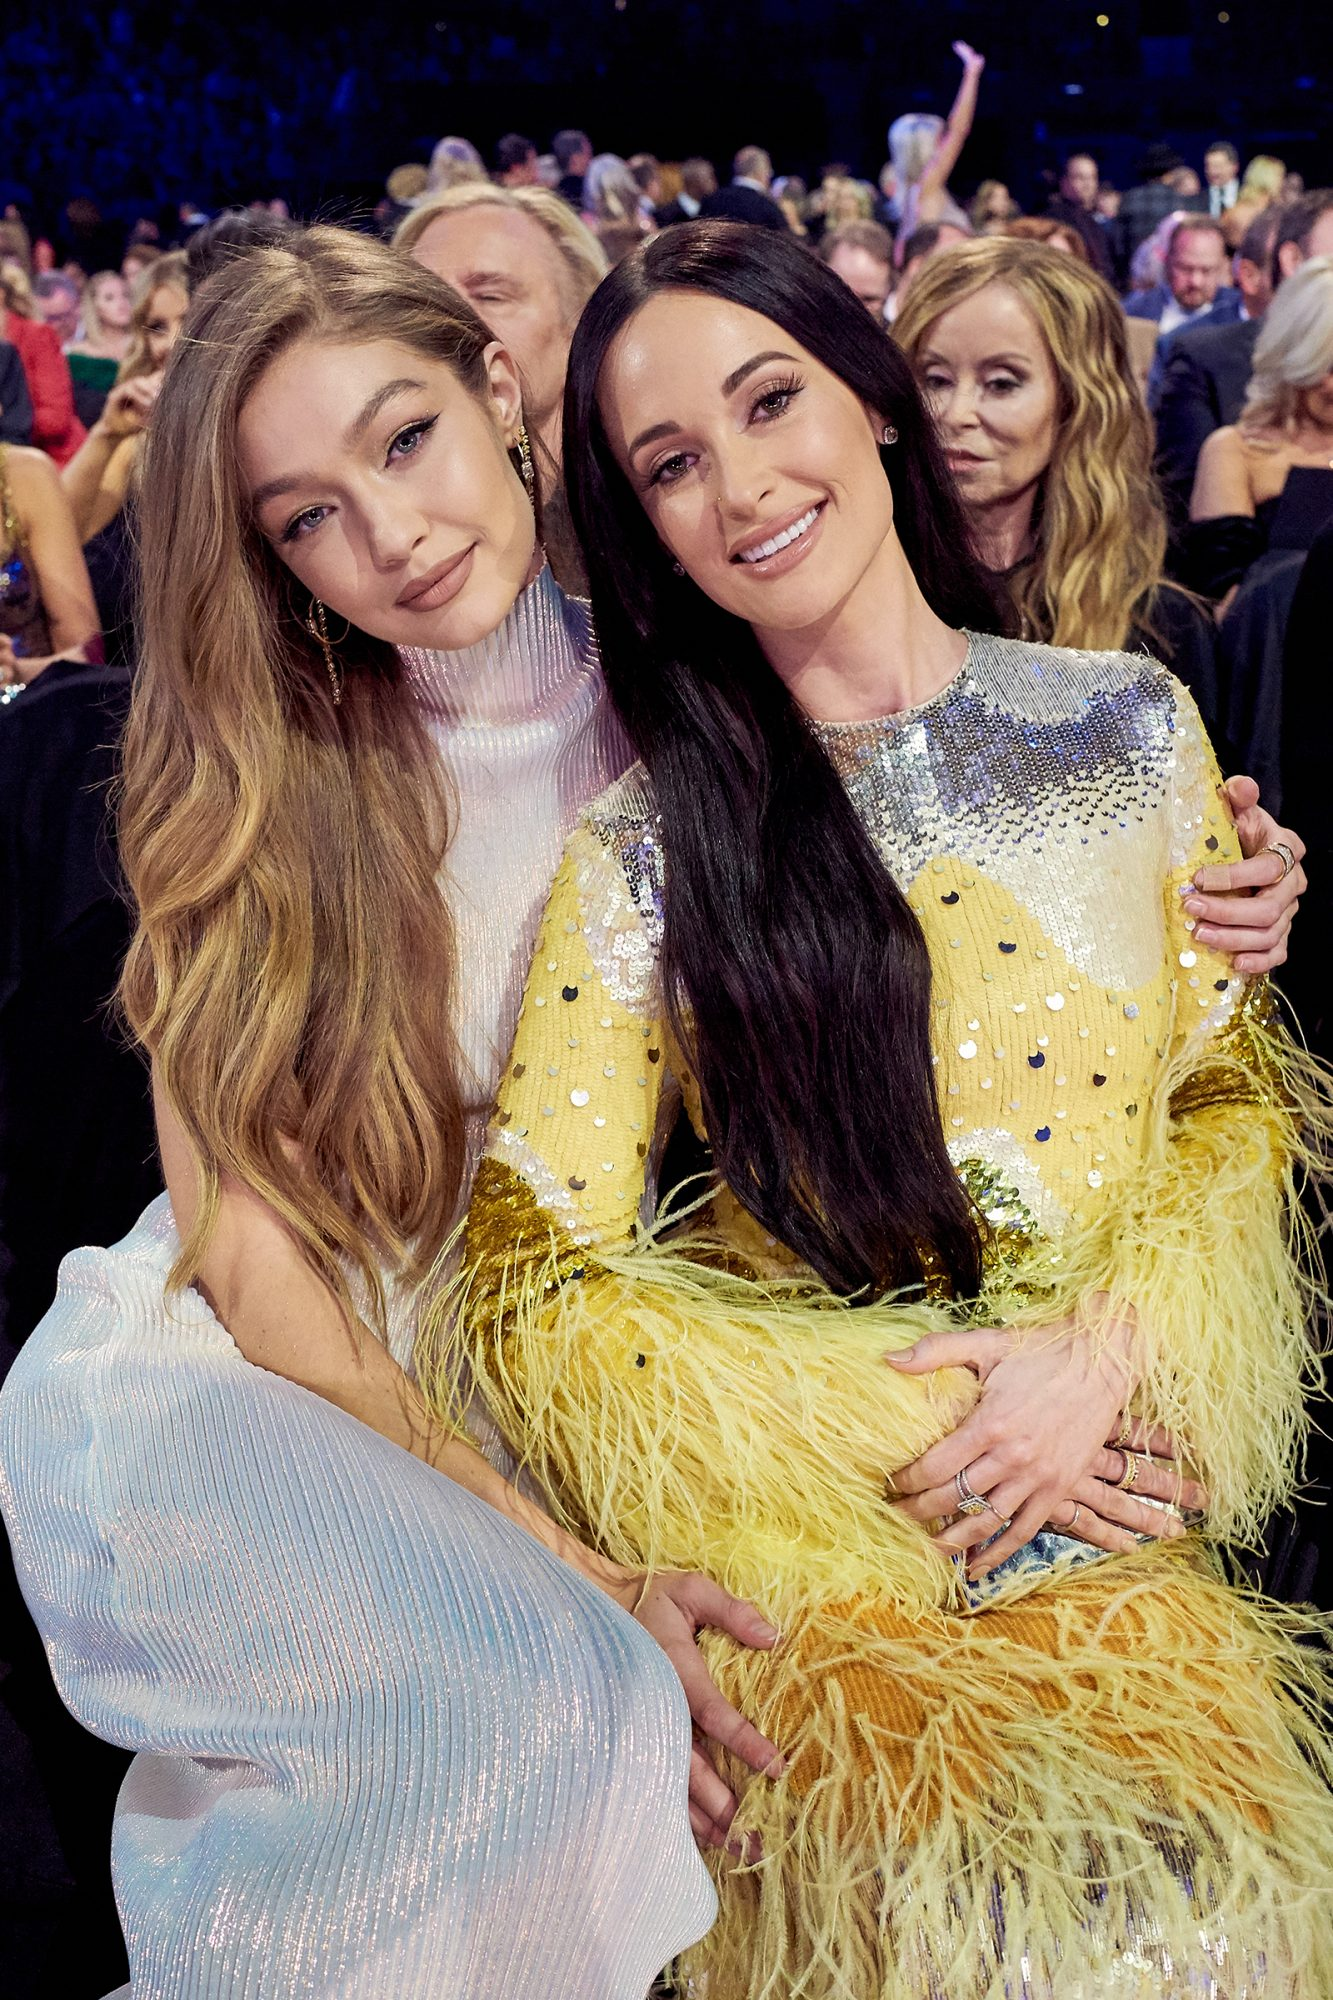 Gigi Hadid and Kacey Musgraves attend the 53rd annual CMA Awards at the Bridgestone Arena on November 13, 2019 in Nashville, Tennessee